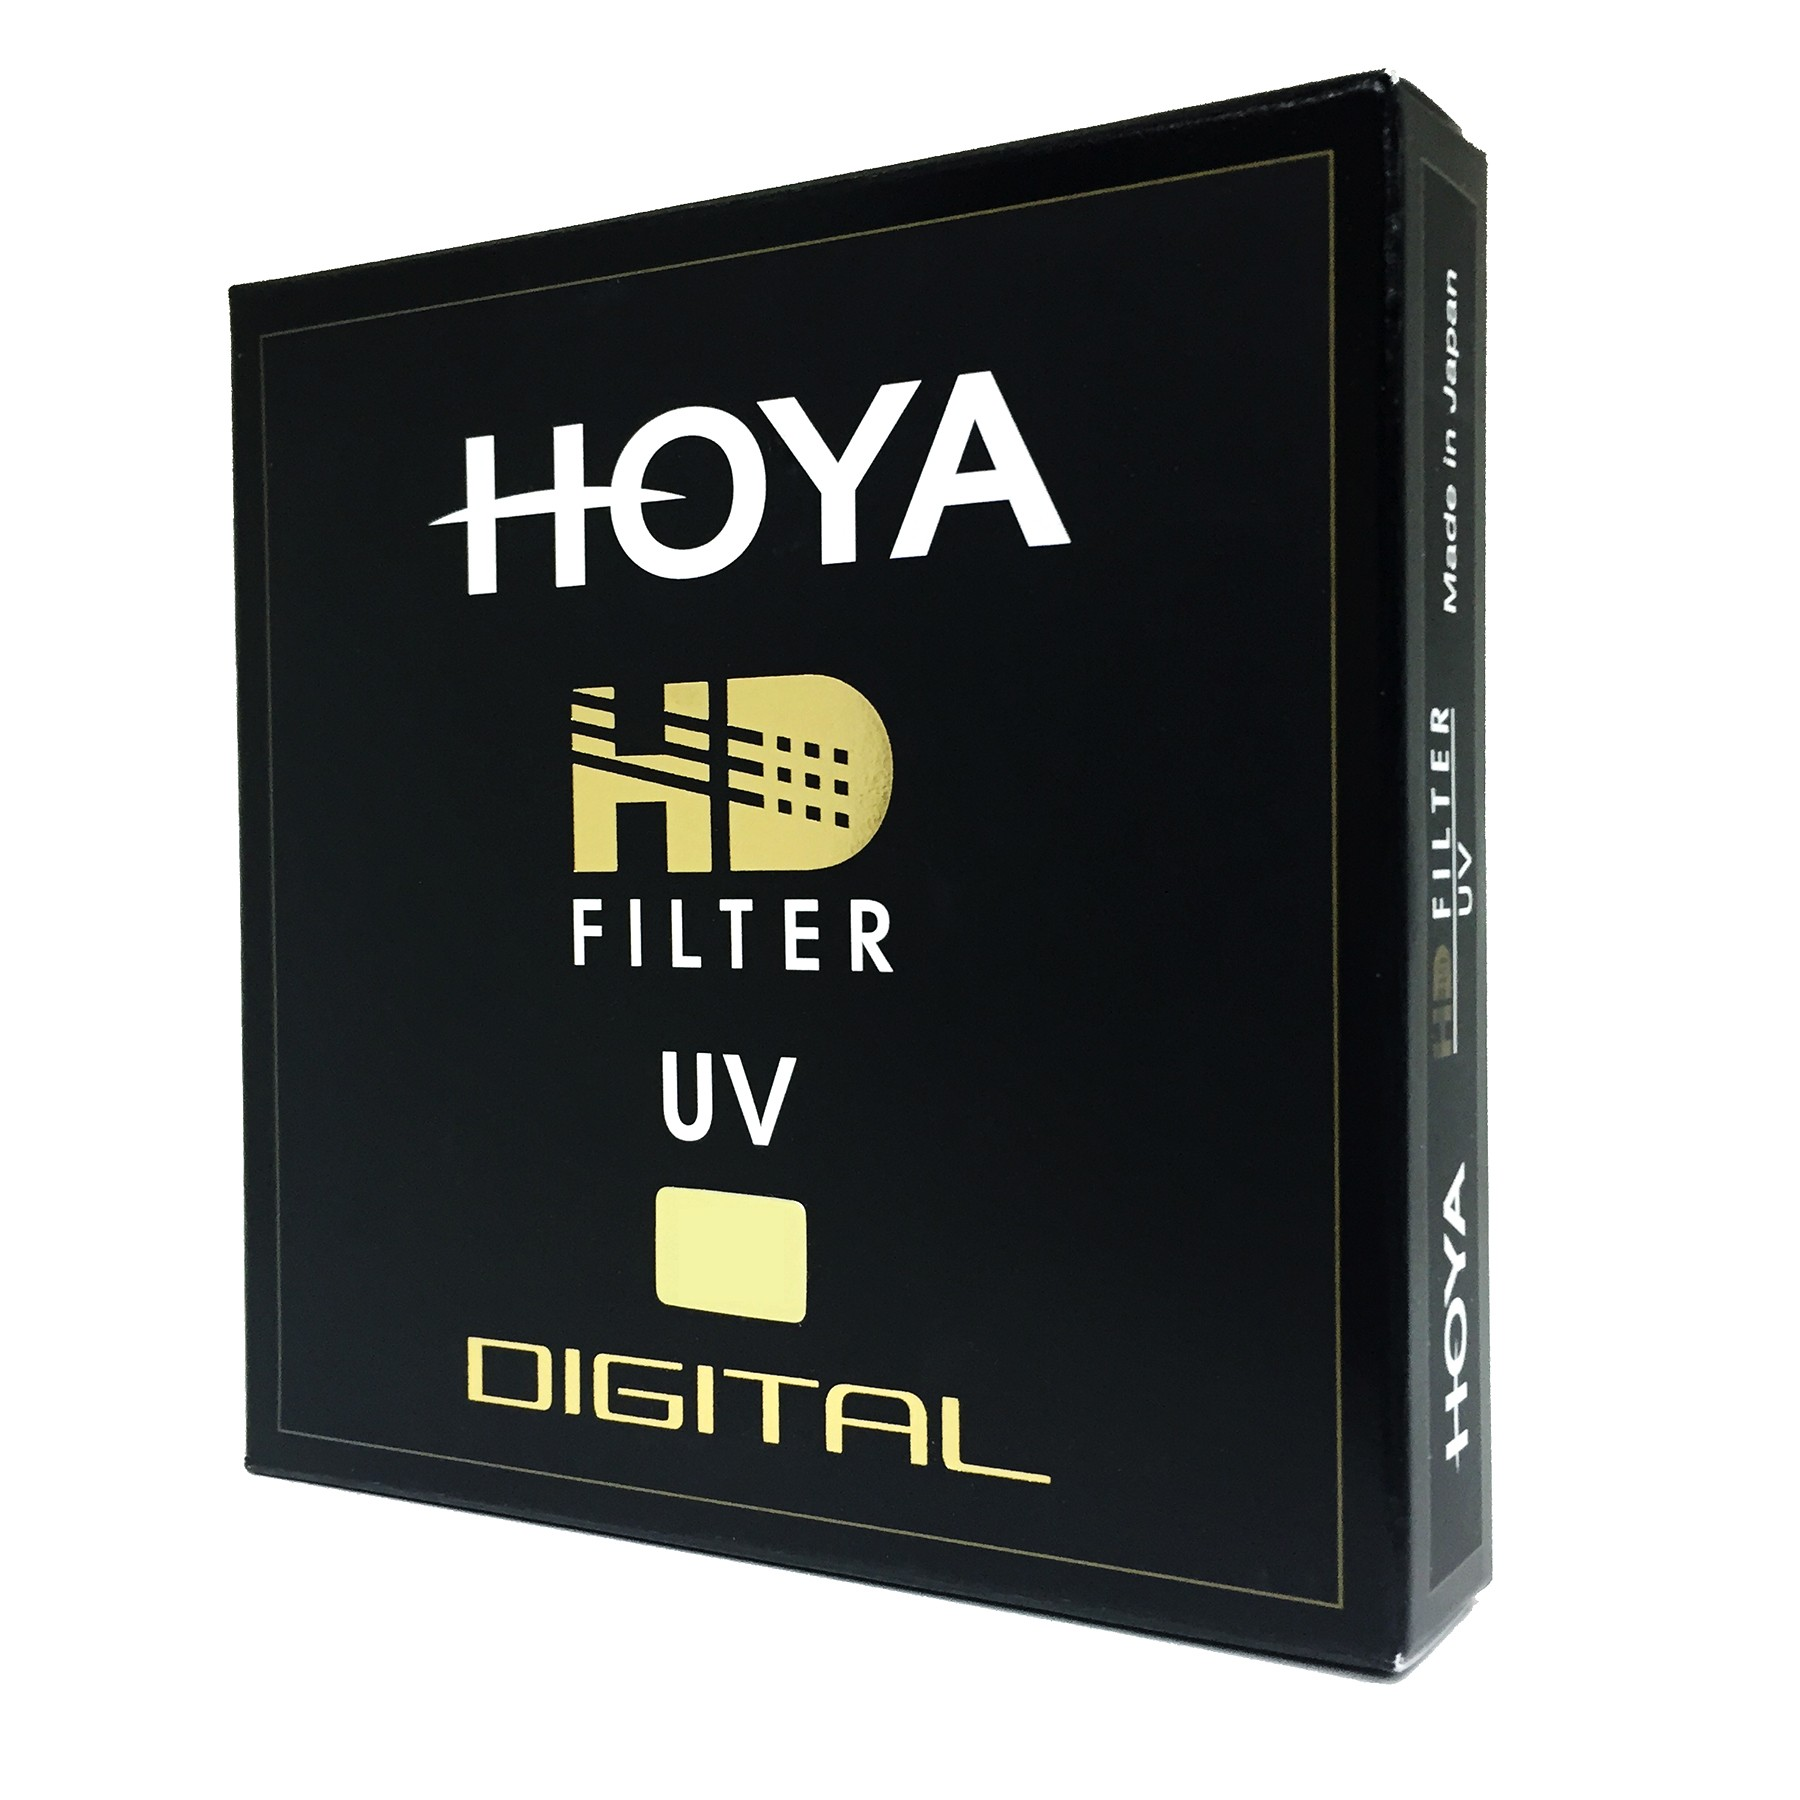 Hoya HD 52mm UV